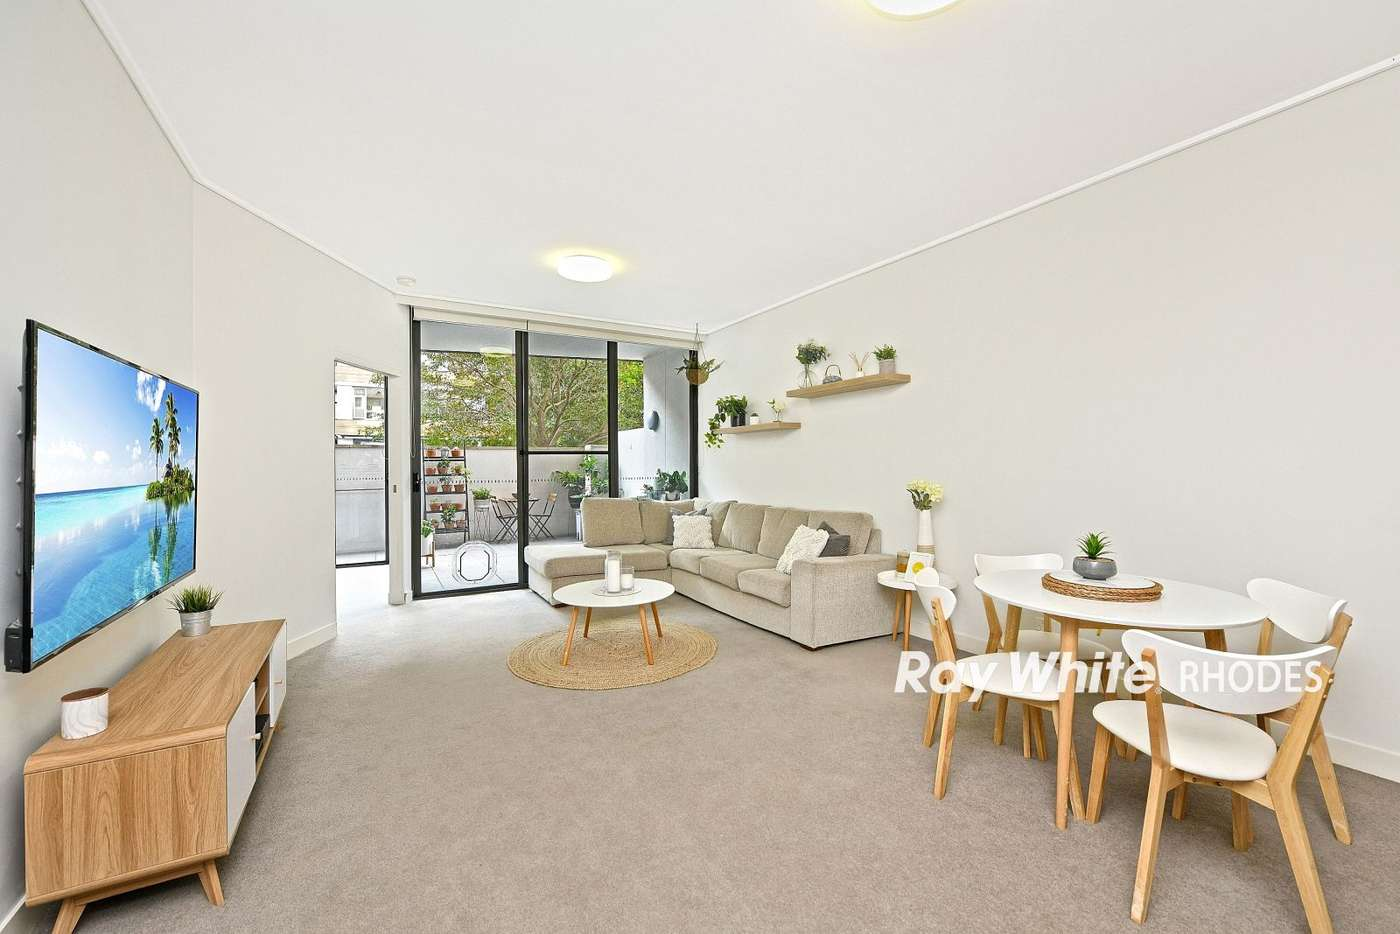 Main view of Homely apartment listing, 104/13 Mary Street, Rhodes NSW 2138